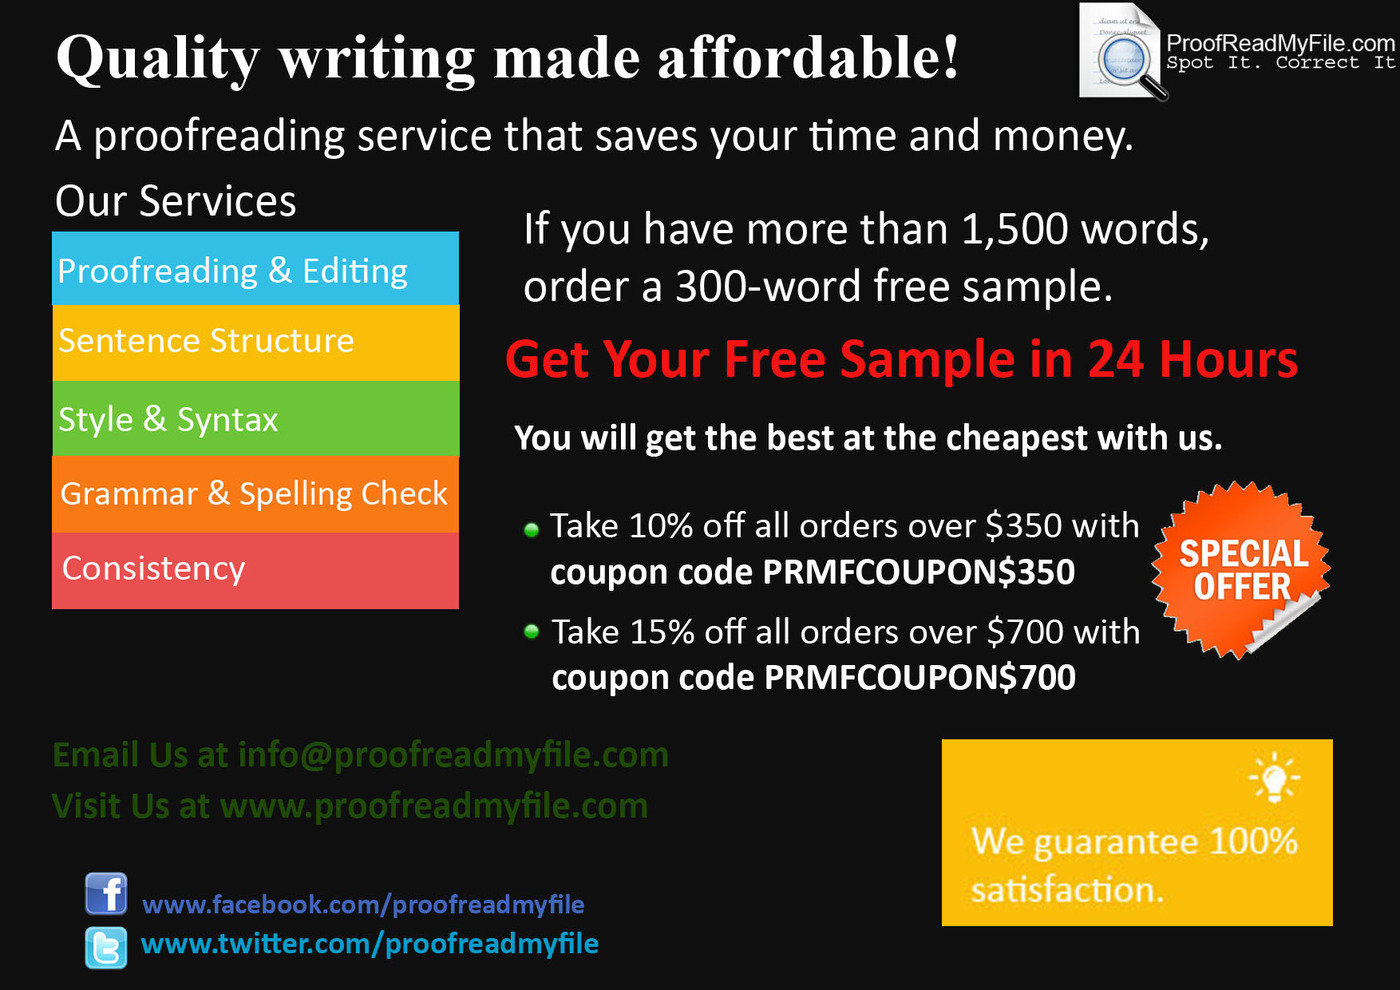 proof read essays online Proof read essays online - leave behind those sleepless nights working on your essay with our academic writing assistance experience the benefits of expert custom writing assistance available here get a 100% original, plagiarism-free dissertation you could only think about in our custom writing help.